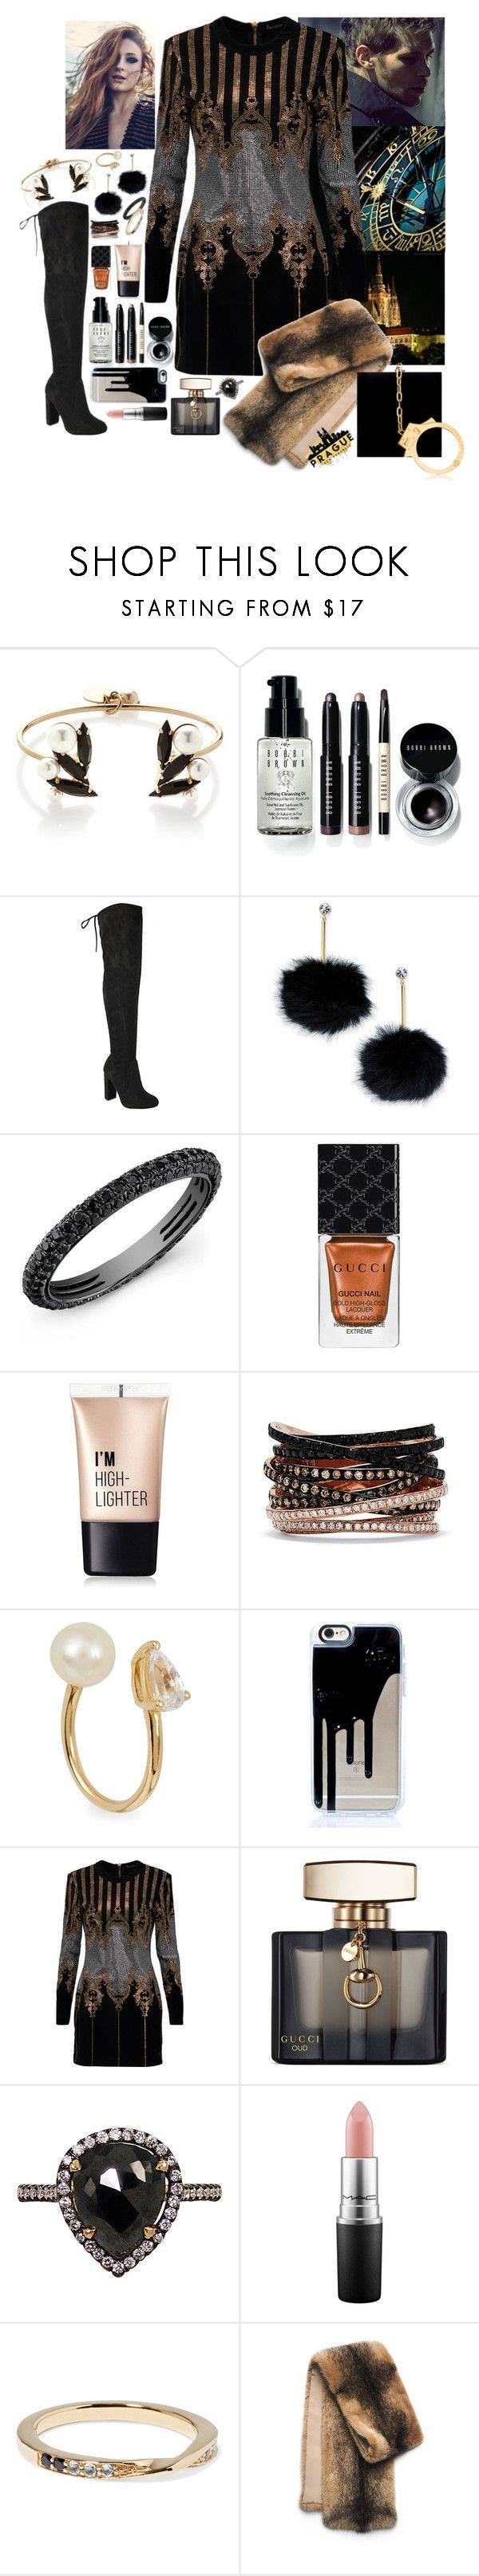 """A Night In Prague"" by leo8august ❤ liked on Polyvore featuring Anton Heunis, Bobbi Brown Cosmetics, Louis Vuitton, Kate Spade, Gucci, Charlotte Russe, Effy Jewelry, Anissa Kermiche, Balmain and Mike Saatji"